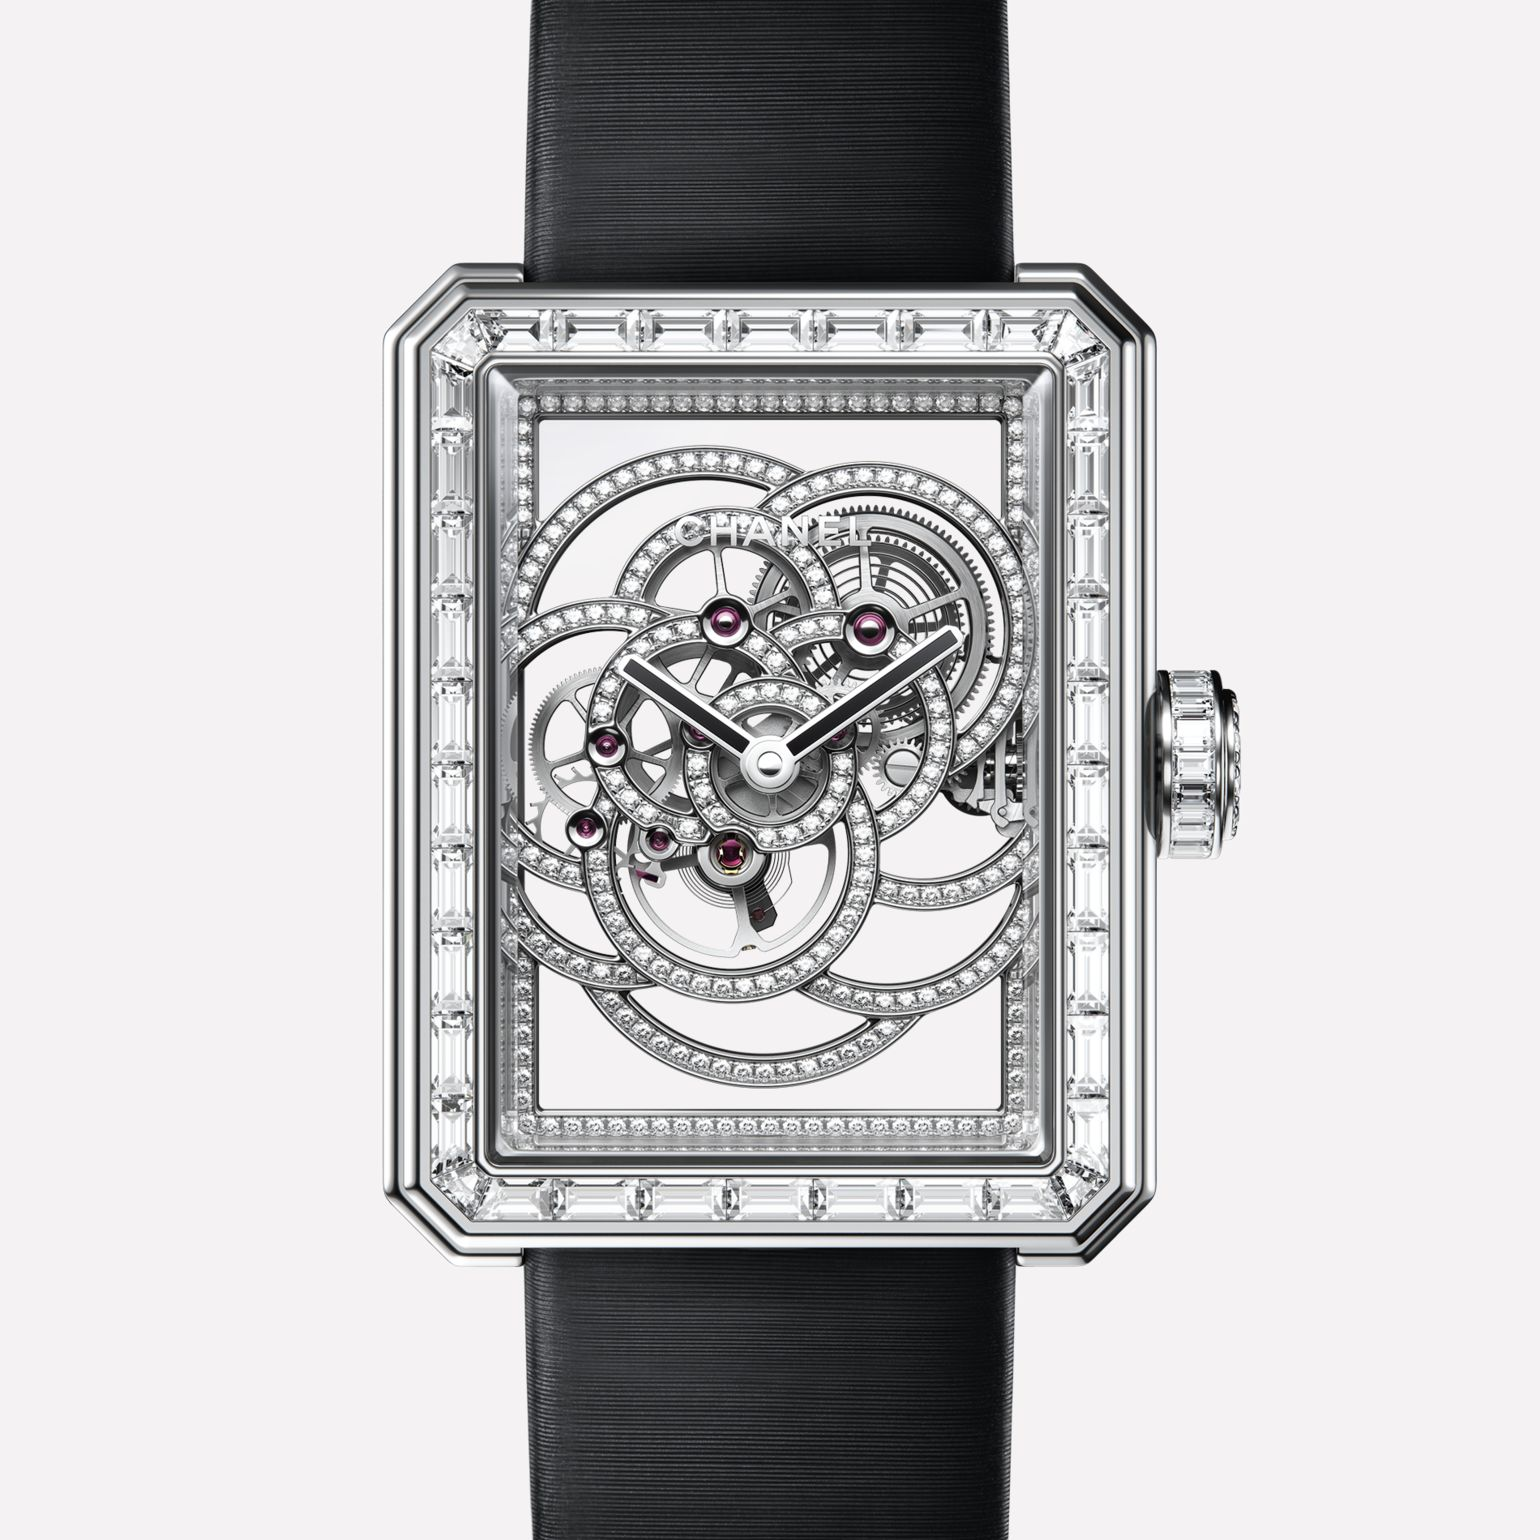 Première Camélia Skeleton White gold, case, bezel, skeleton and crown set with baguette cut diamonds